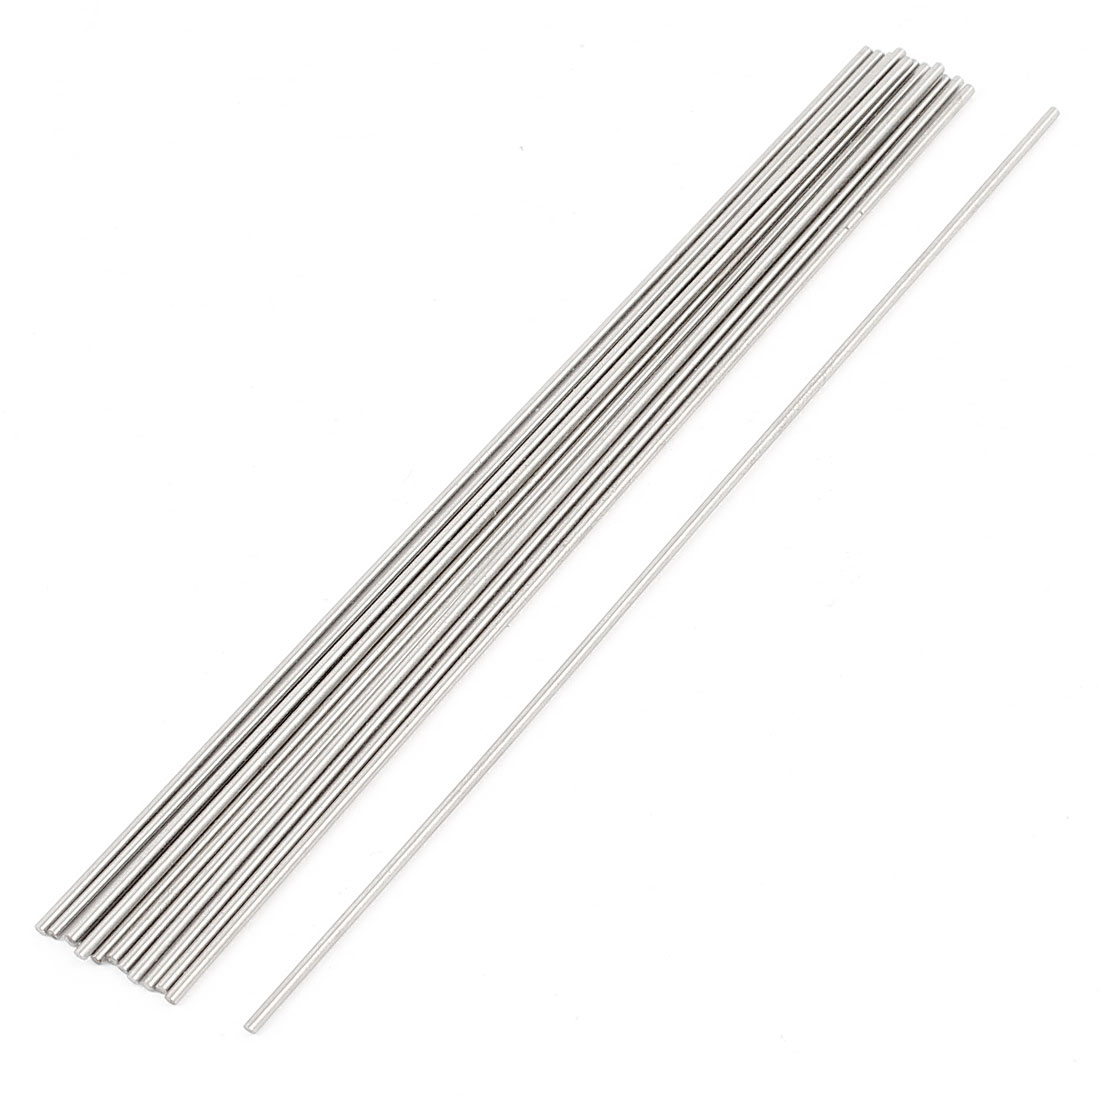 15Pcs Lathe Tools Spare Parts Steel Rod 1mm Diameter 100mm Long Round Stock